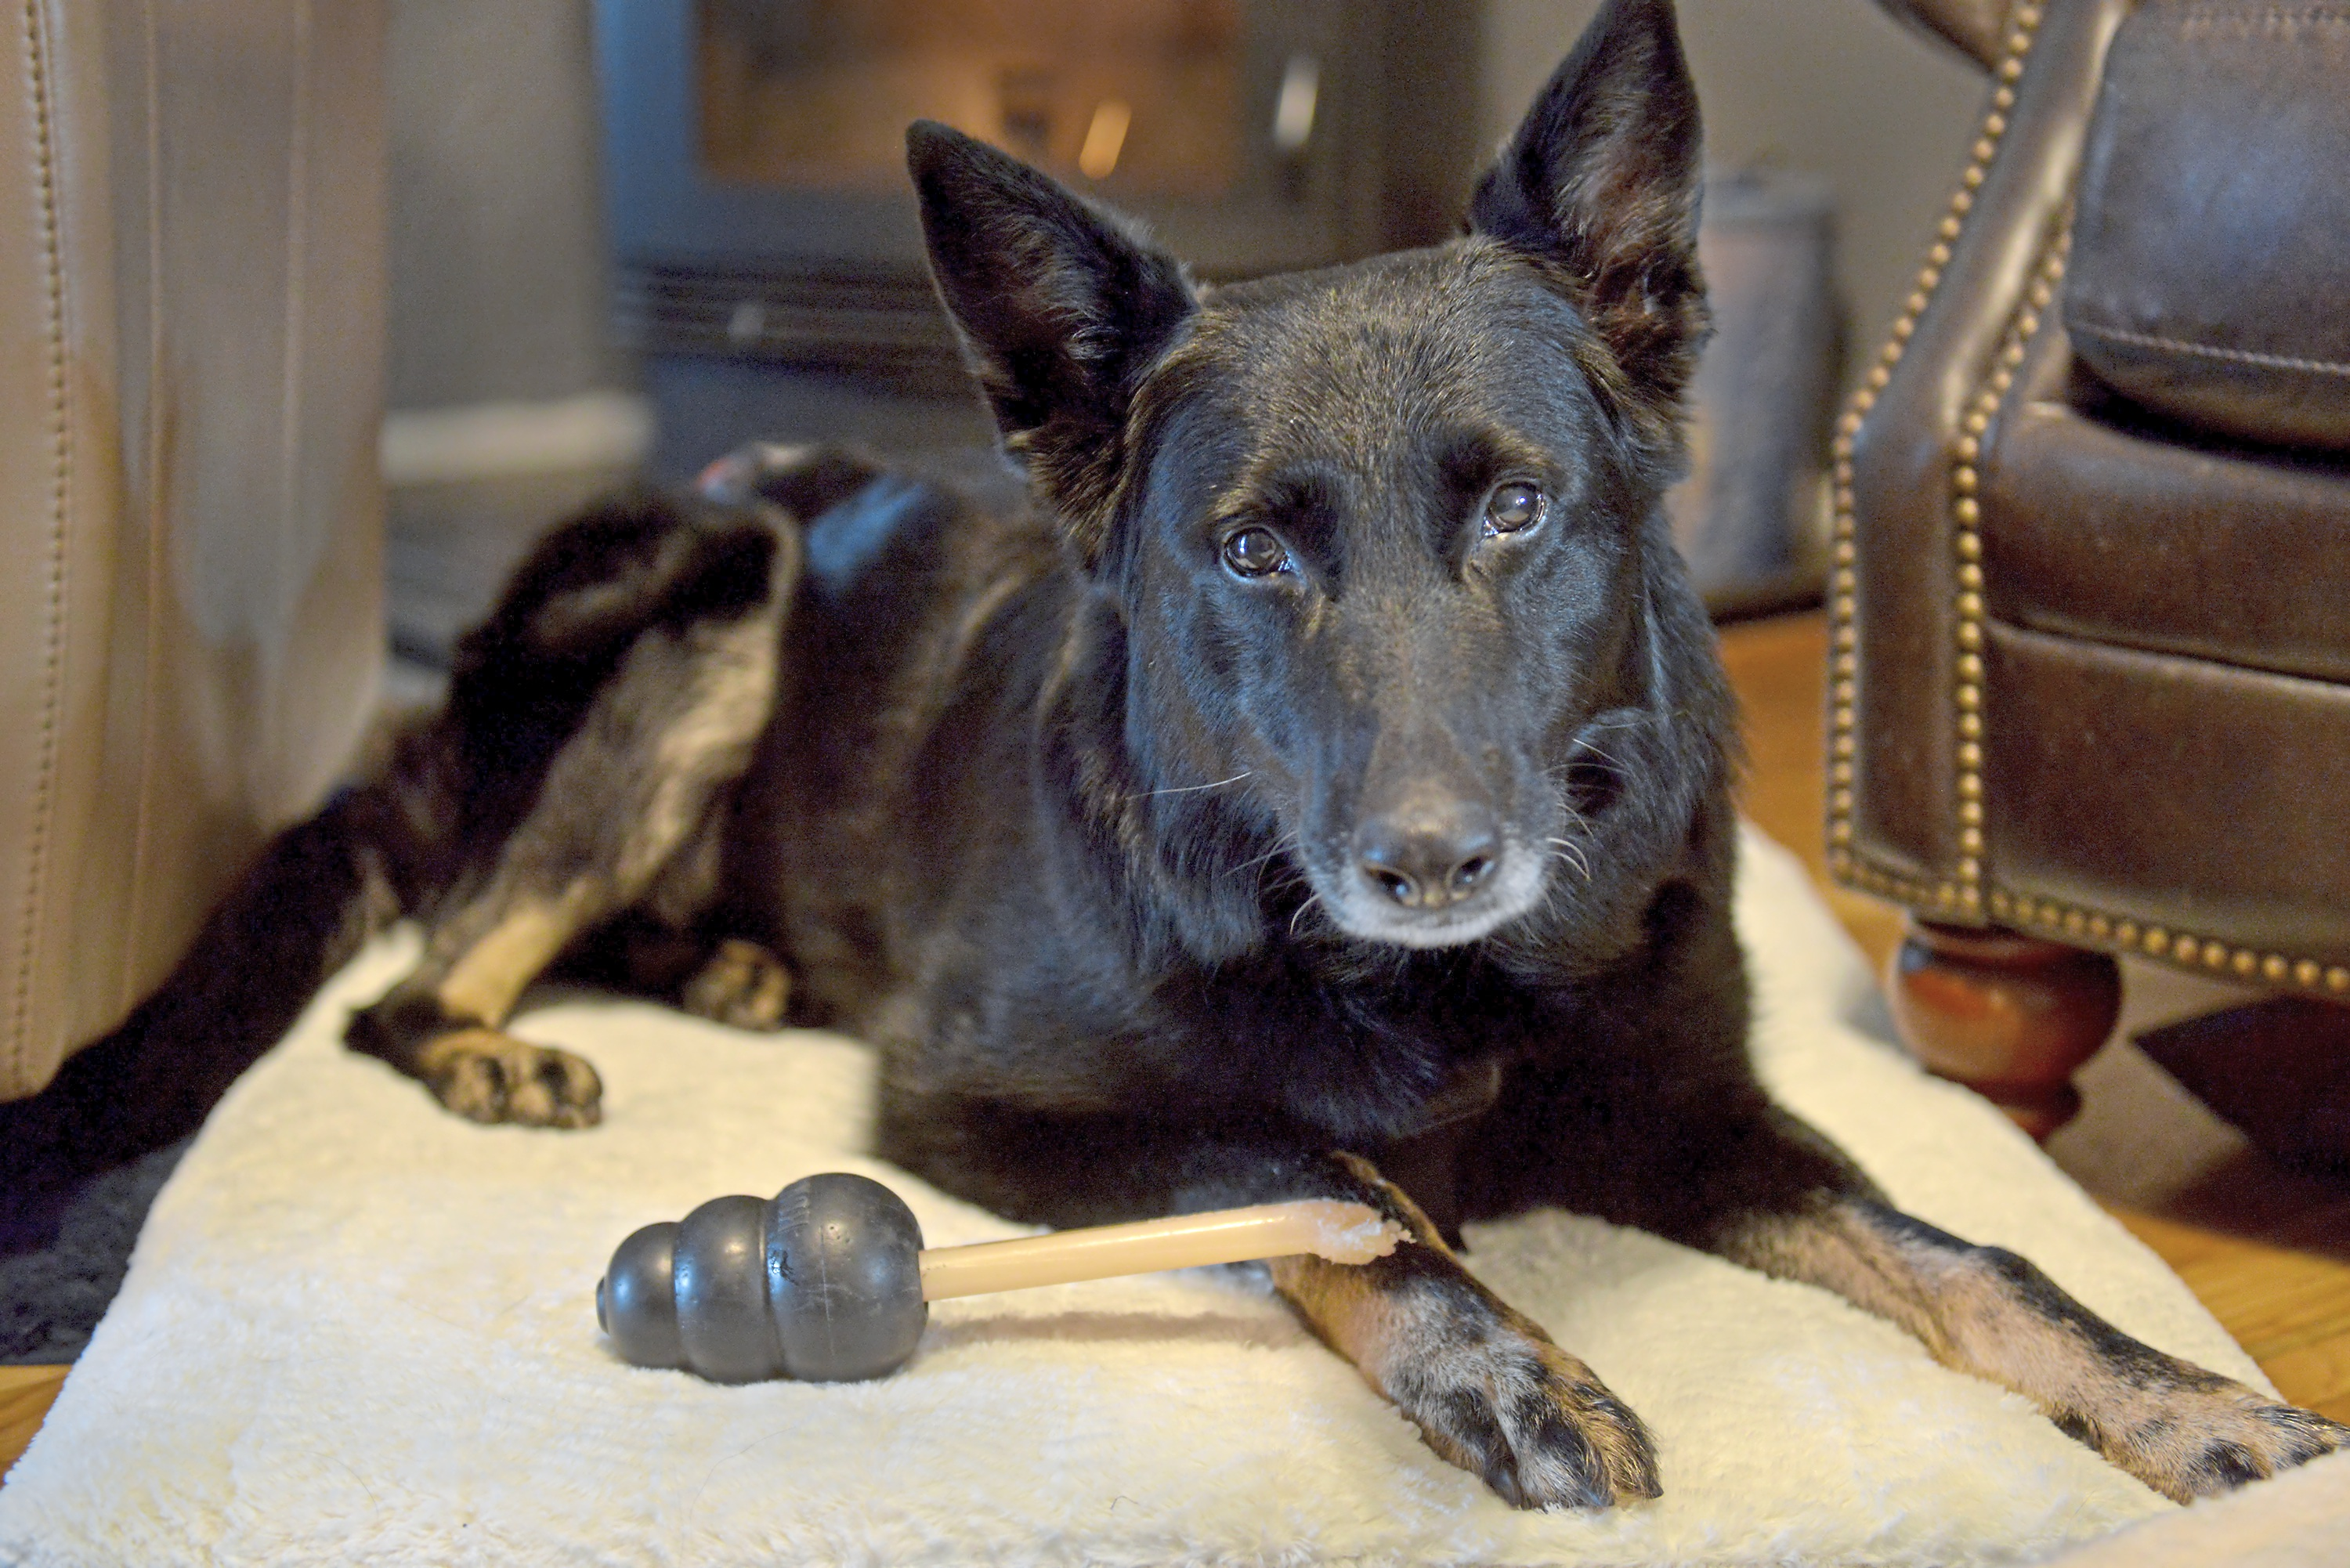 20171201ppPetTales1MAG-1 Honz, a 7-year-old German shepherd and former bomb and gun detection dog with the Veterans Administration, rests after another day of rehabilitation in the home of his partner, Sgt. Charles Hartman of Penn Hills.